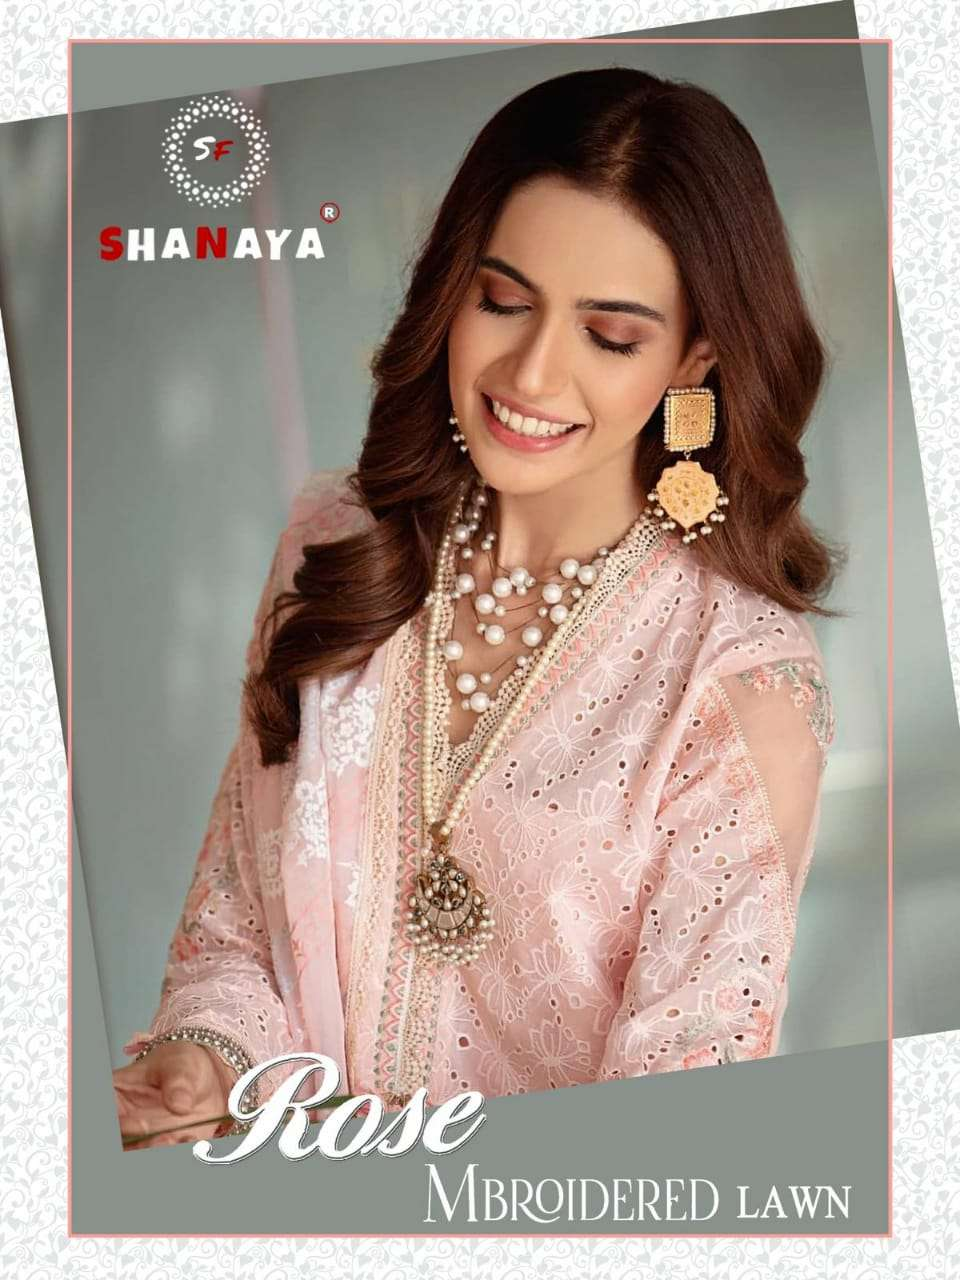 SHANAYA FASHION ROSE MBROIDERED LAWN DESIGNER CAMBRIC COTTON WITH EMBROIDERY WORK AND HANDWORK PAKISTANI REPLICA SUITS WHOLESALE